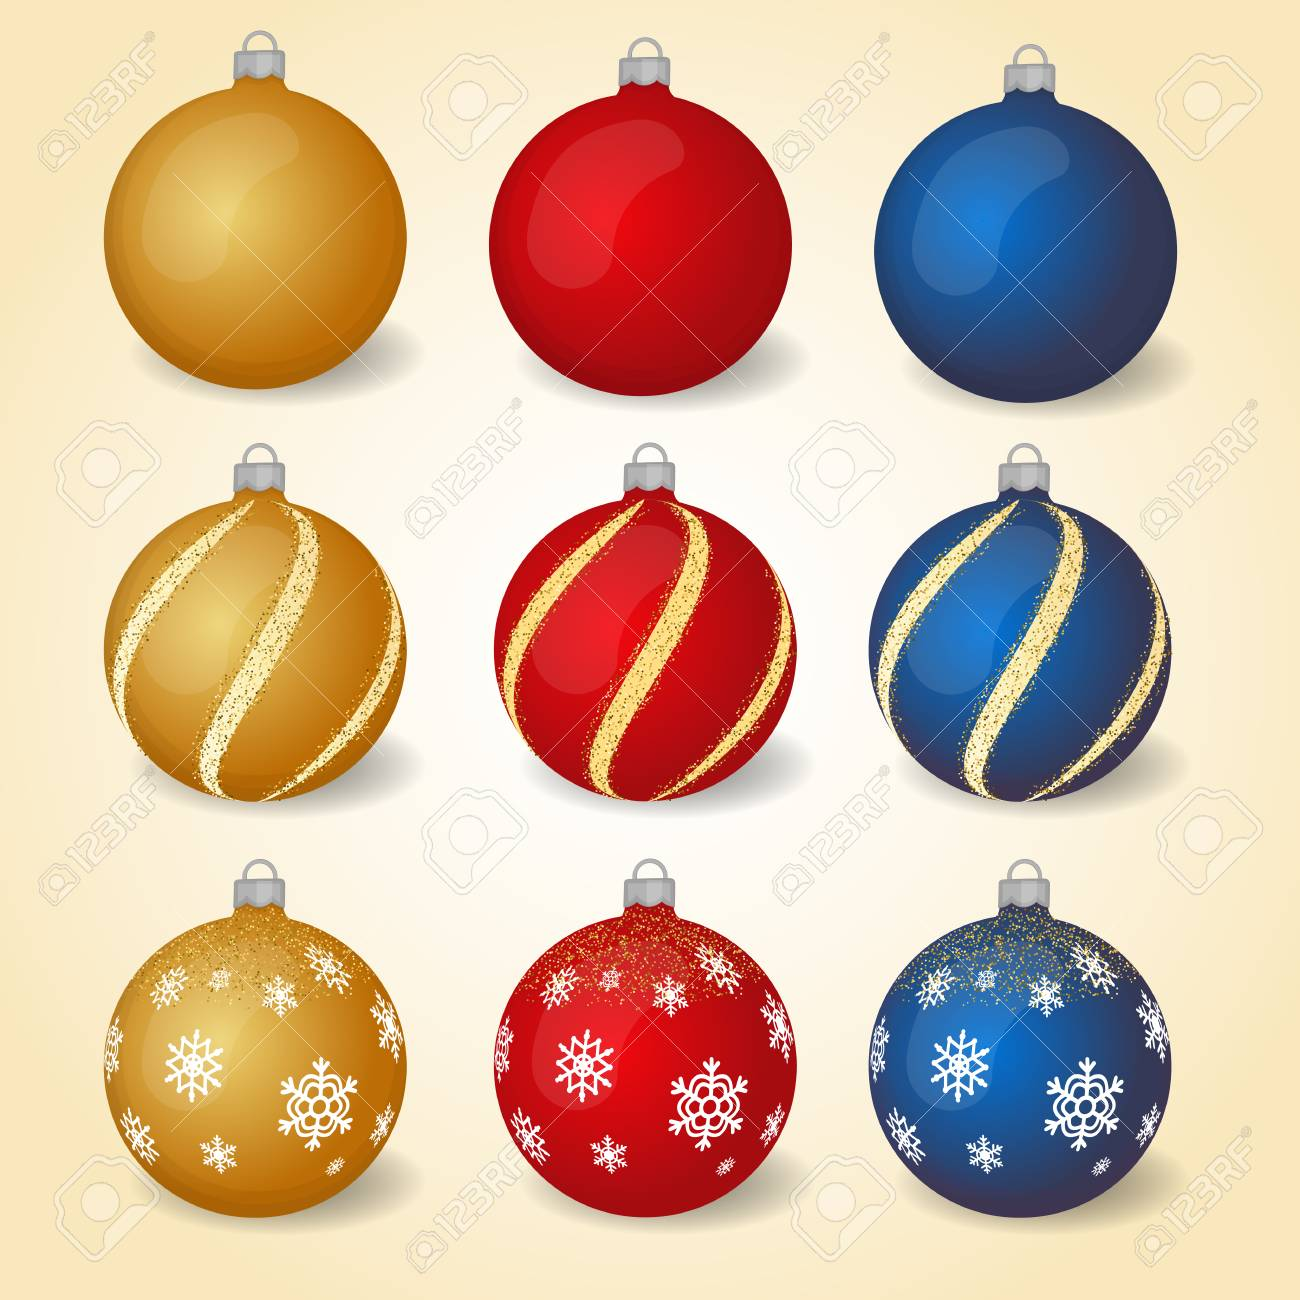 Colorful Christmas.Colorful Christmas Balls With Different Ornaments Set Of Isolated